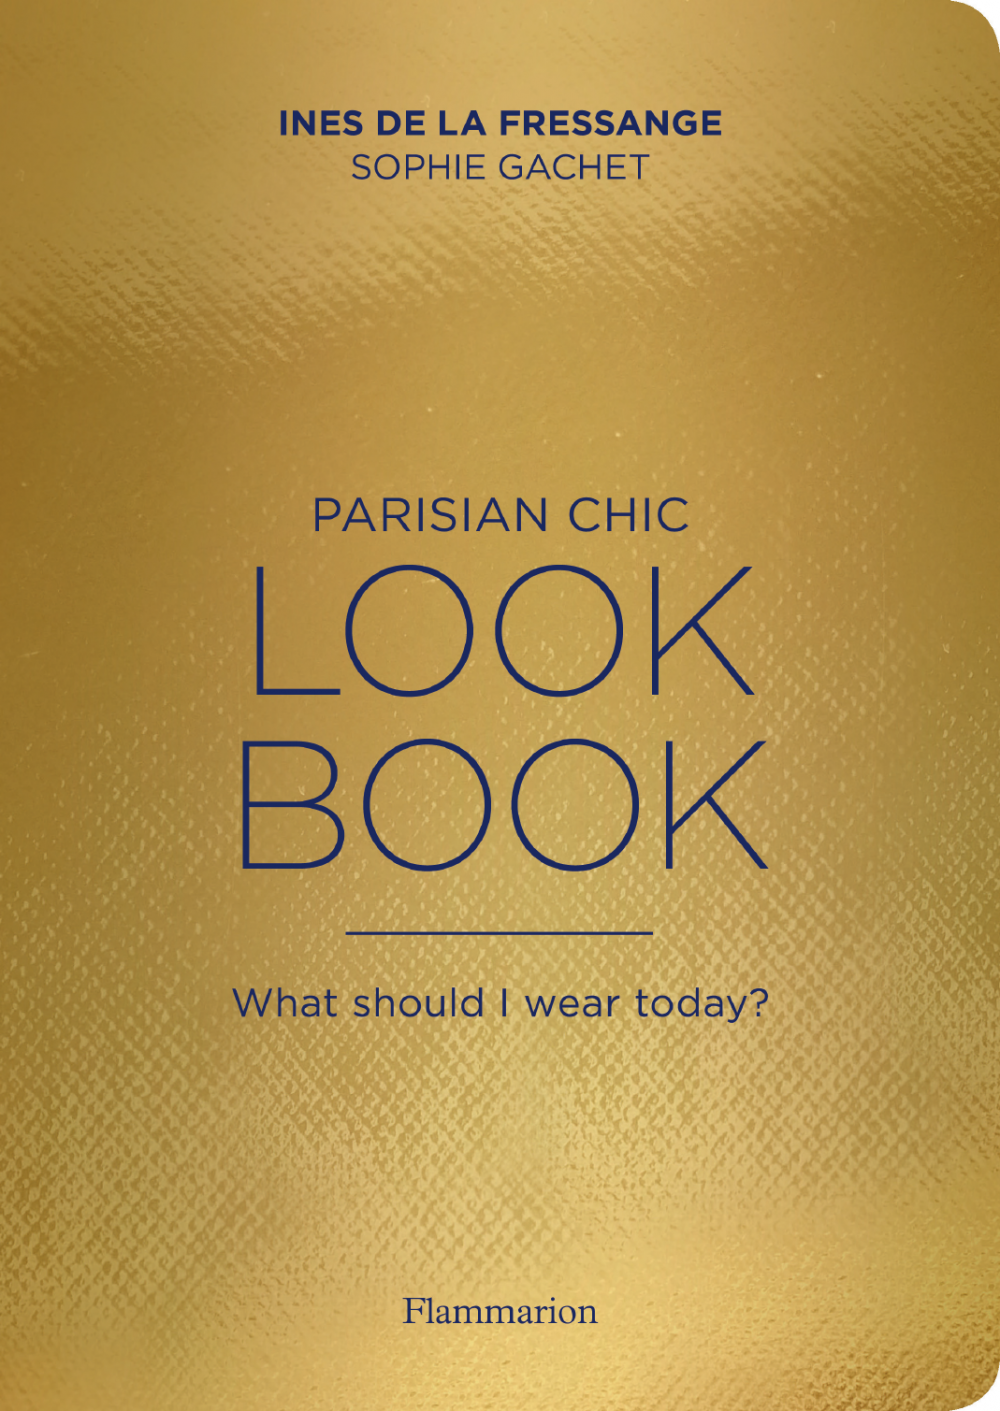 Parisian Chic - Look Book